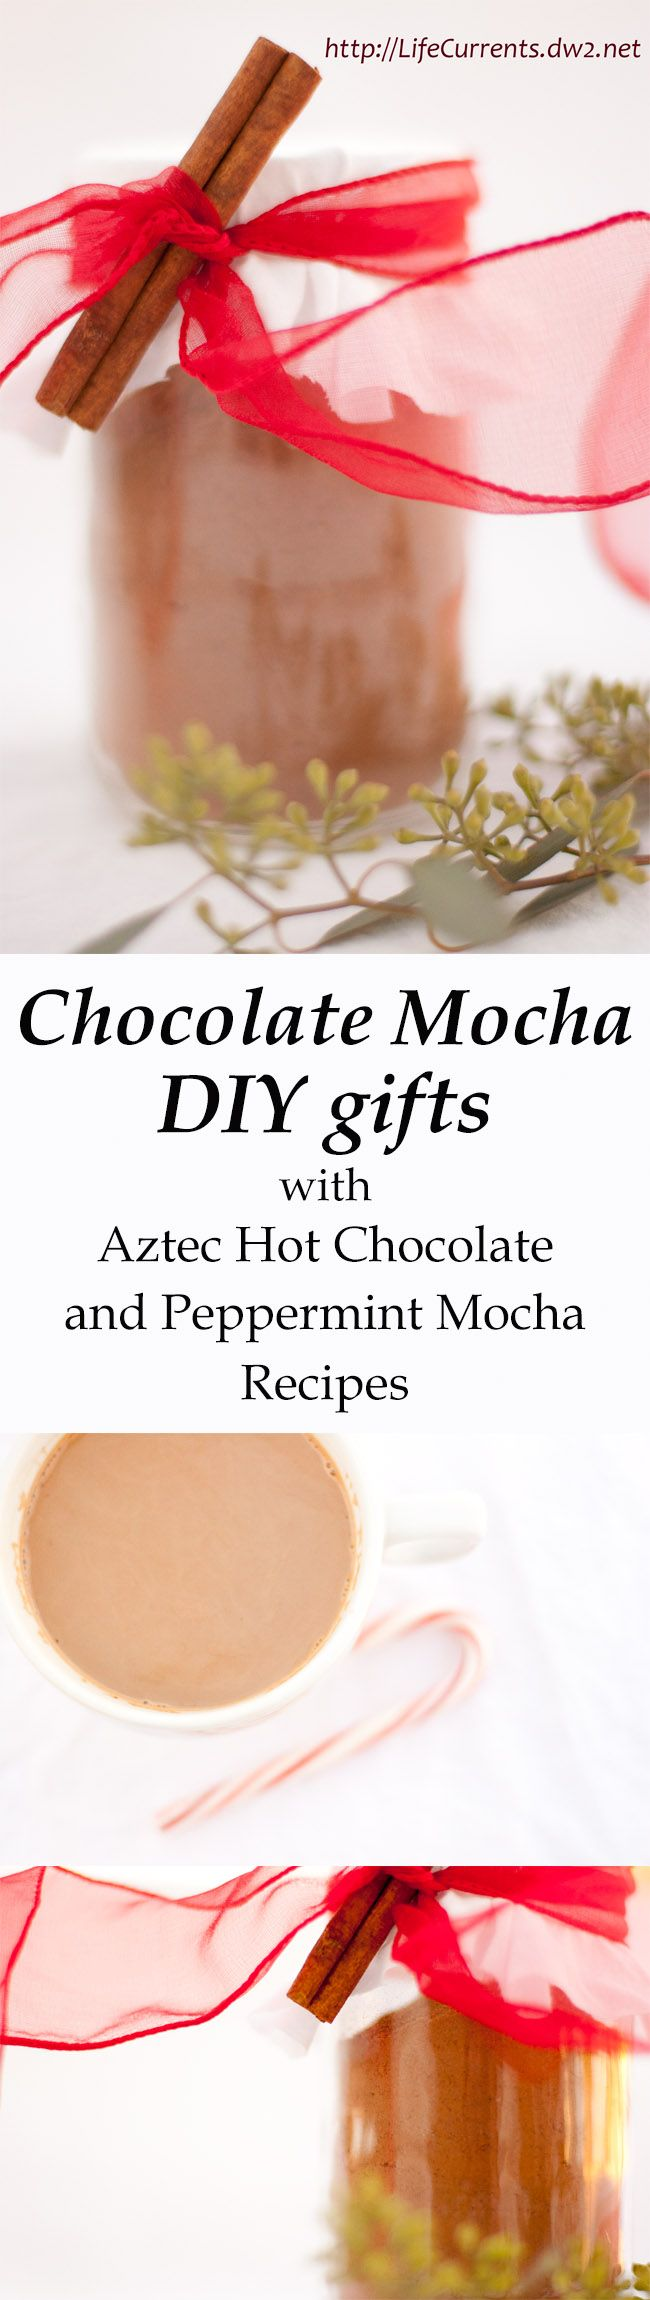 Chocolate Mocha or DIY gifts from Life Currents with recipes for Aztec Hot Chocolate Mix and Peppermint Mocha. You'll love giving these as much as your friends will love getting them!